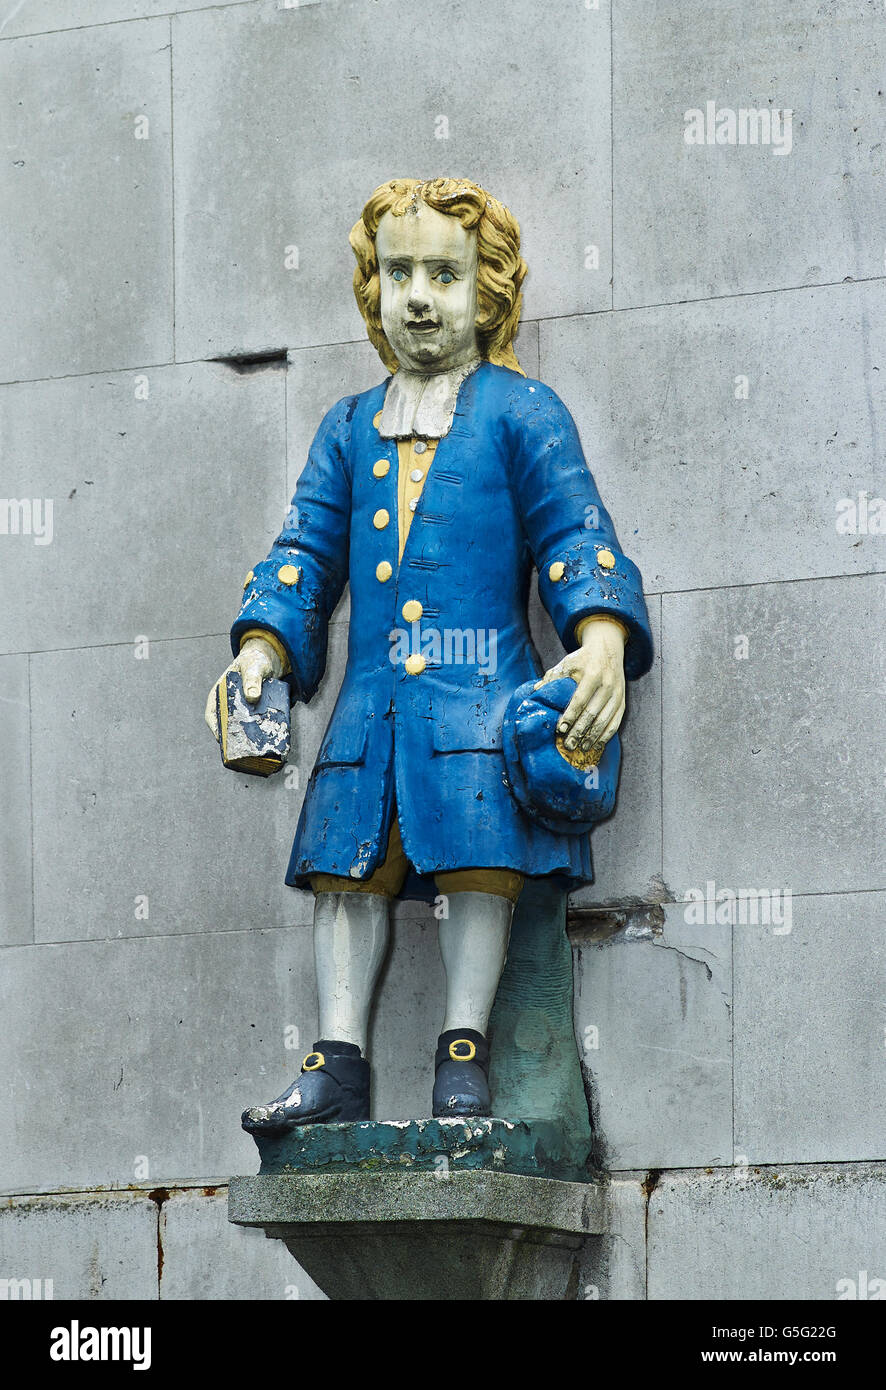 St Andrew's Holborn: blue coat orphan boy  wearing blue coat and holding Bible - Stock Image